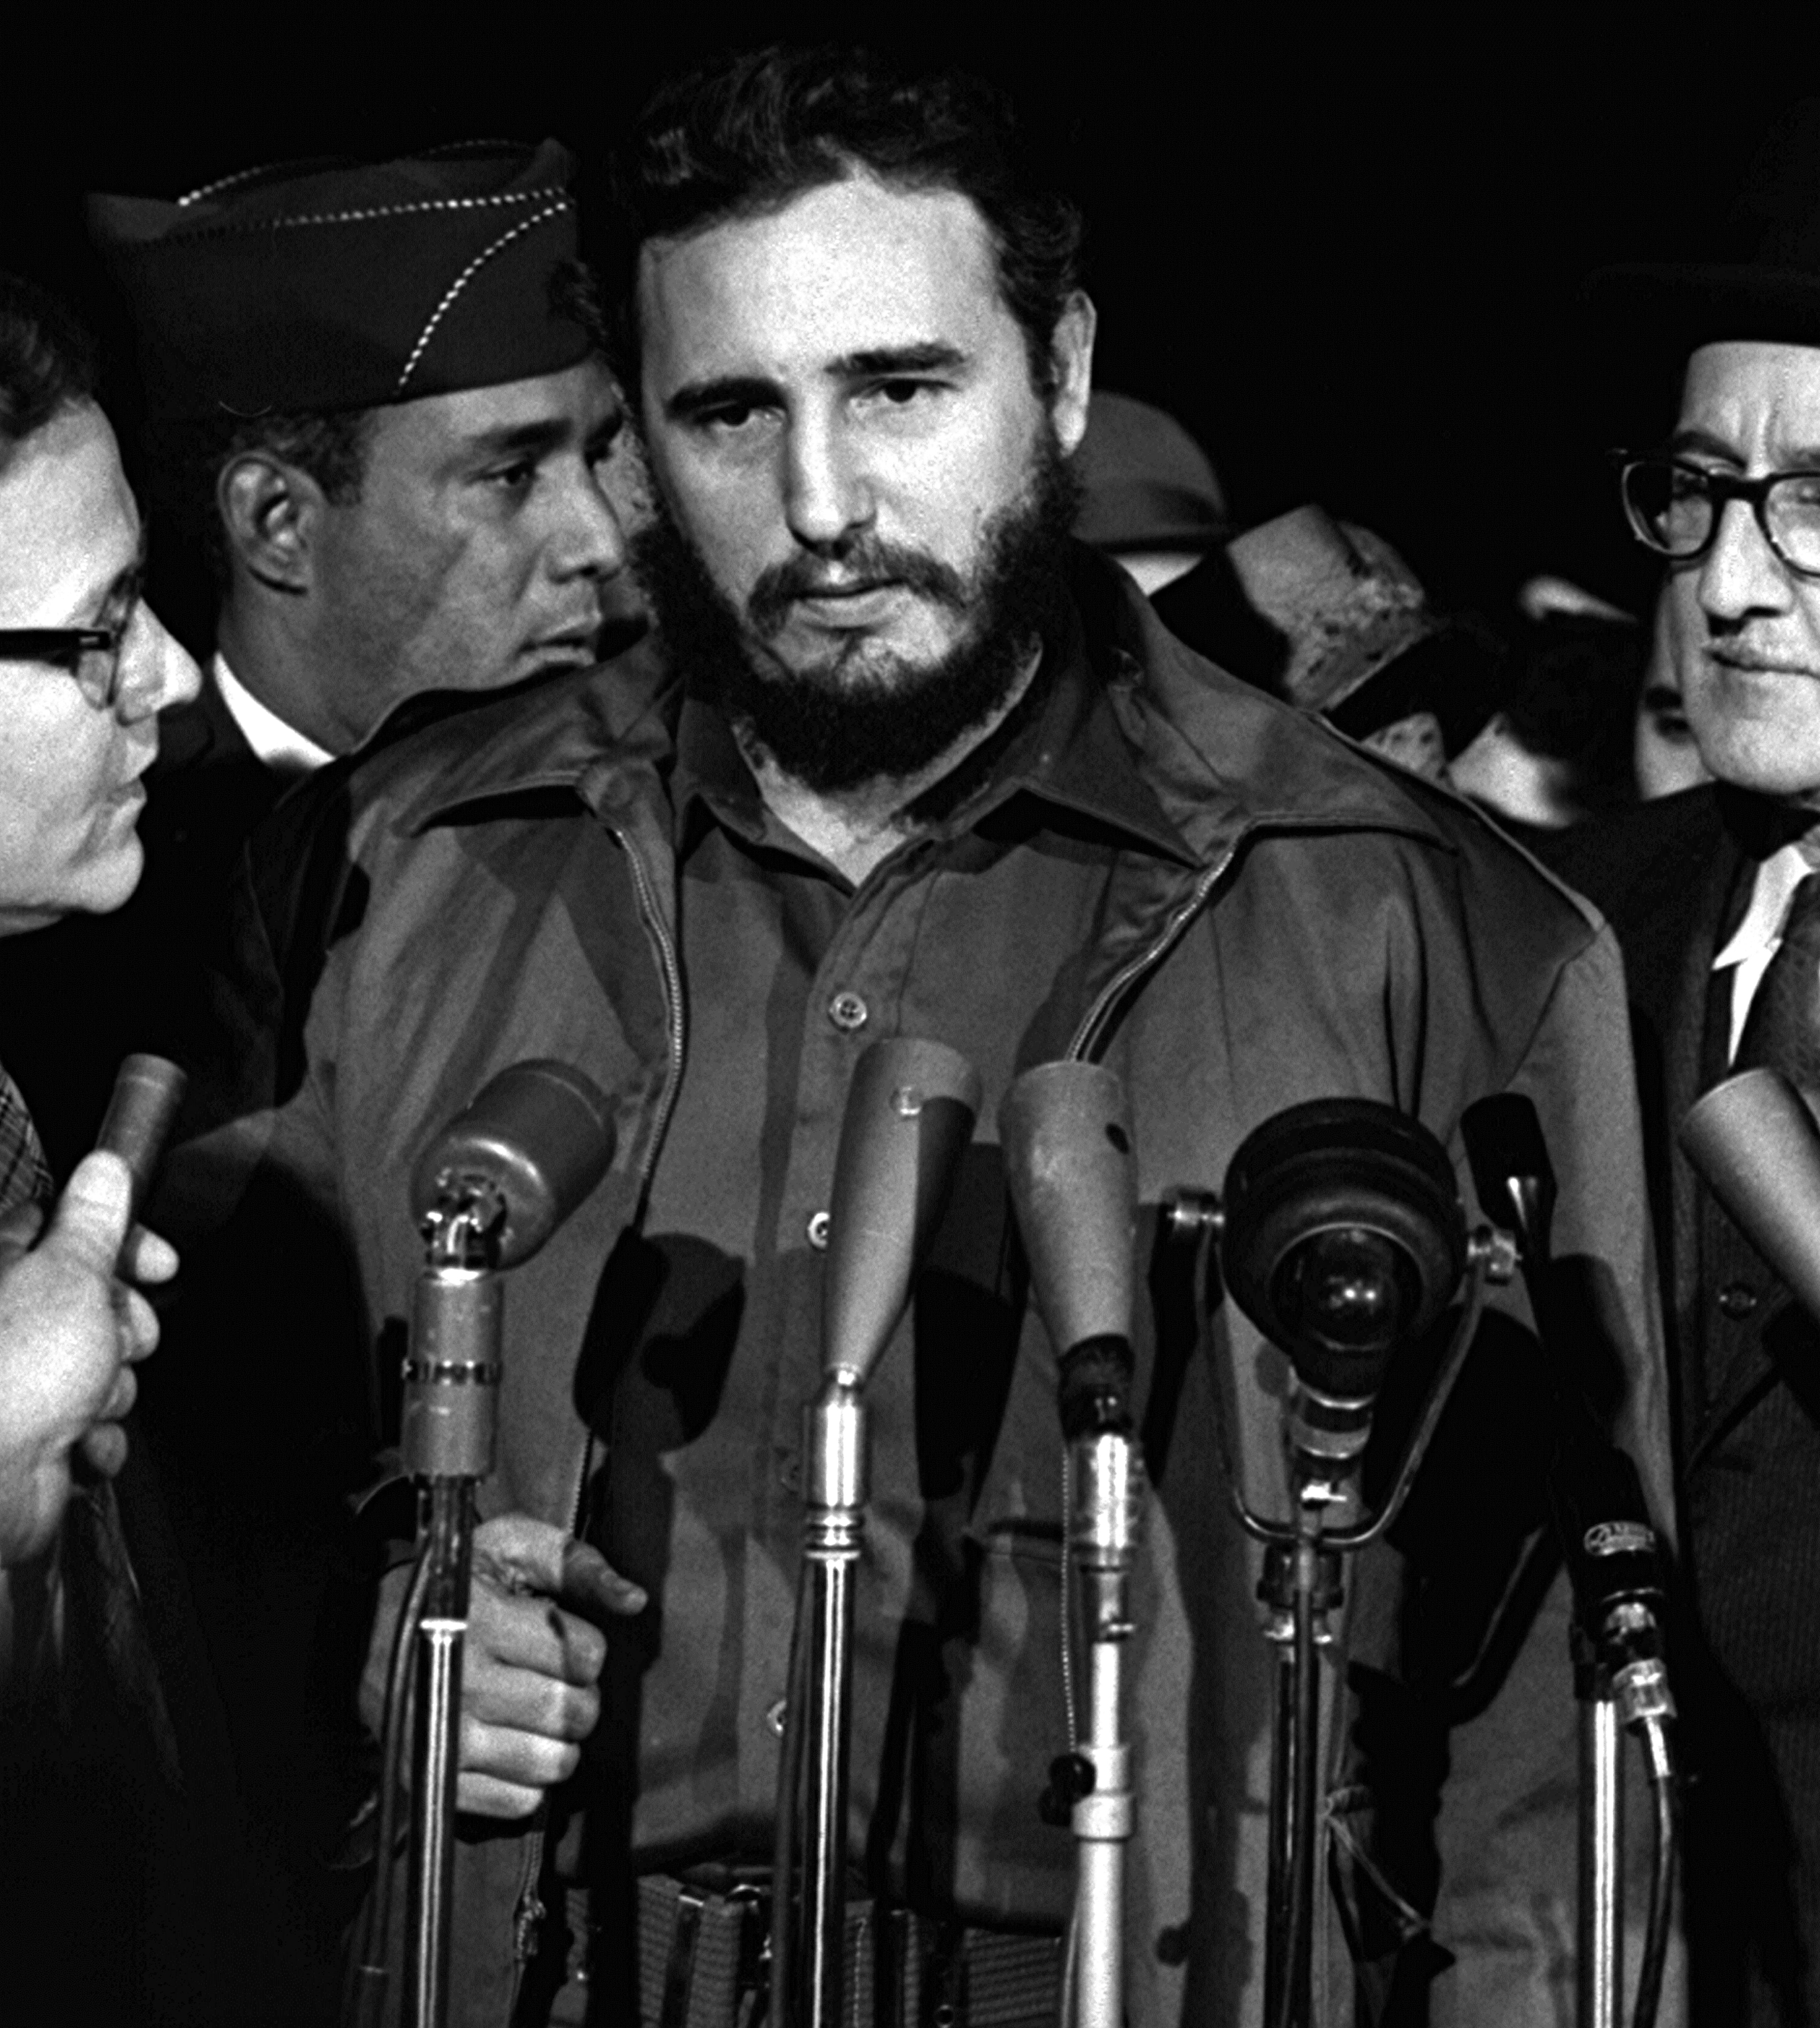 http://upload.wikimedia.org/wikipedia/commons/c/c5/Fidel_Castro_-_MATS_Terminal_Washington_1959.jpg